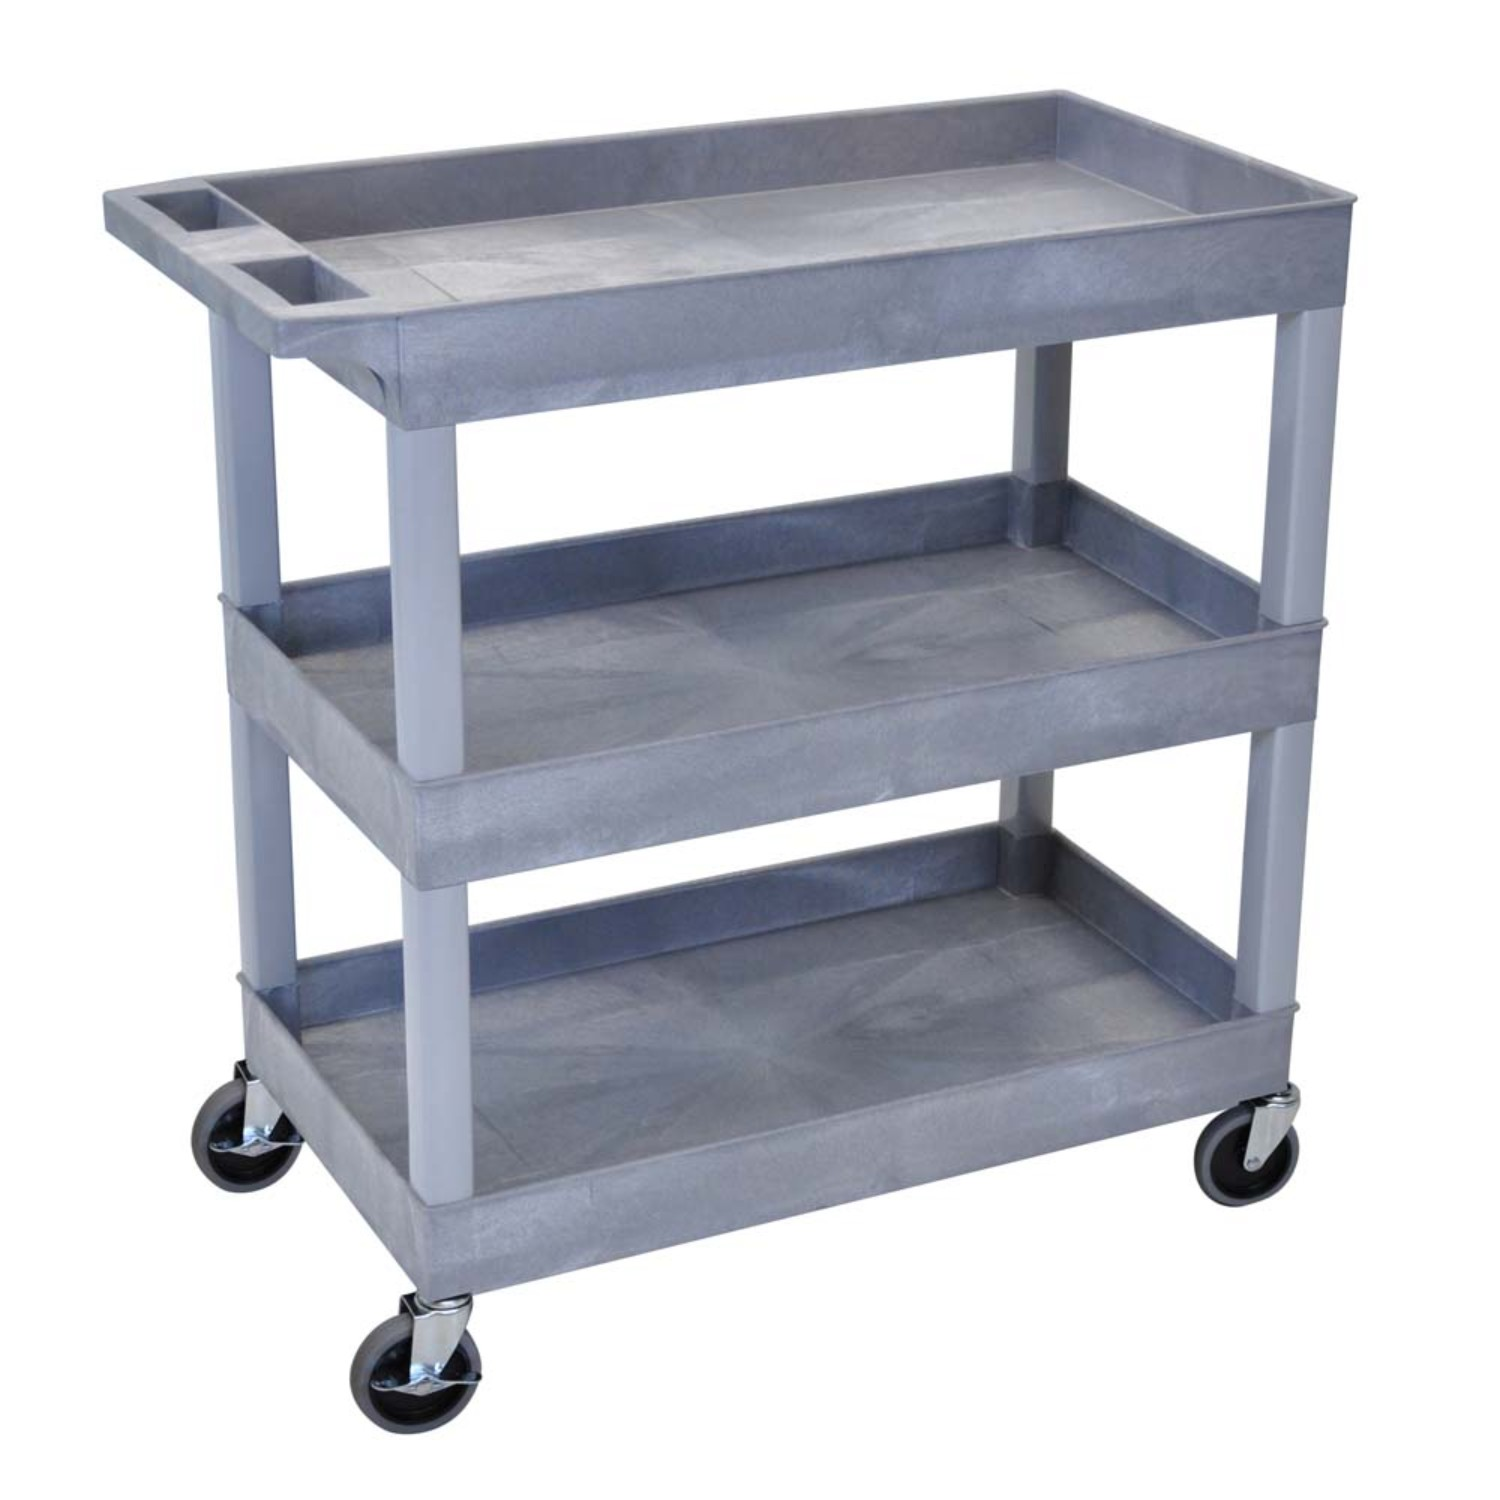 18 x 32 Tub Cart 3 shelves Gray